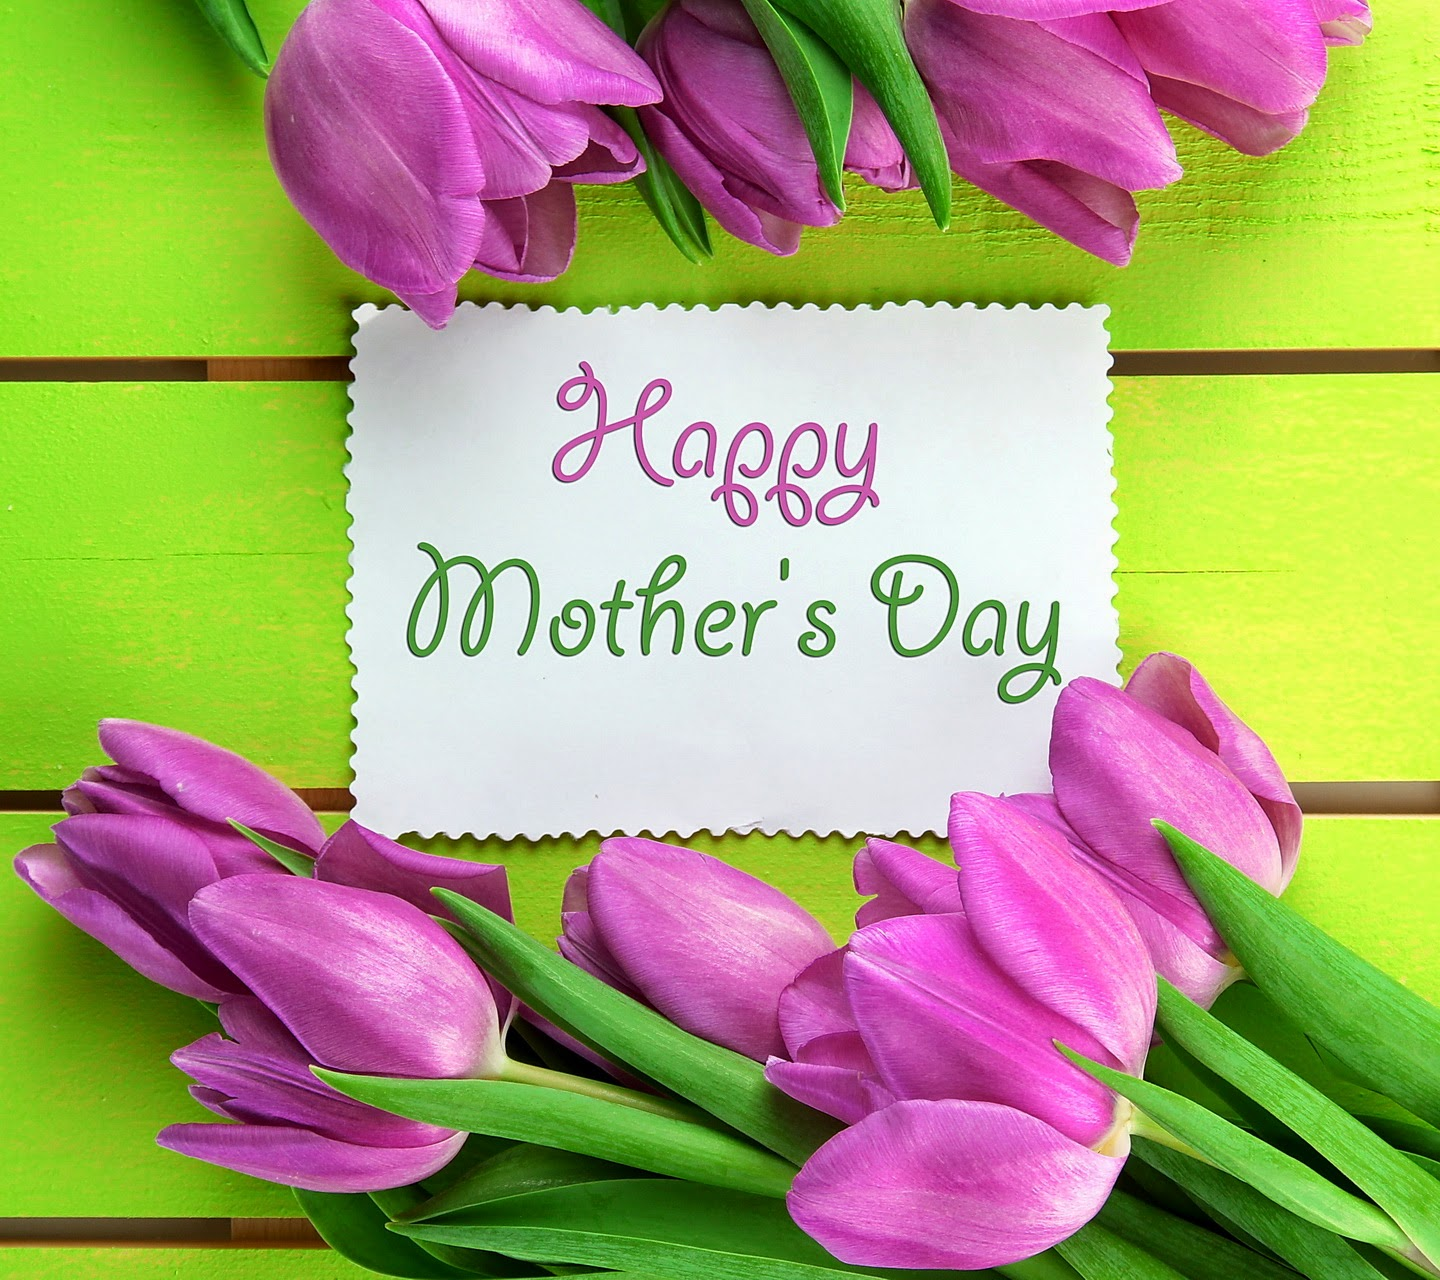 mothers day wallpapers for desktop mobile pc backgrounds